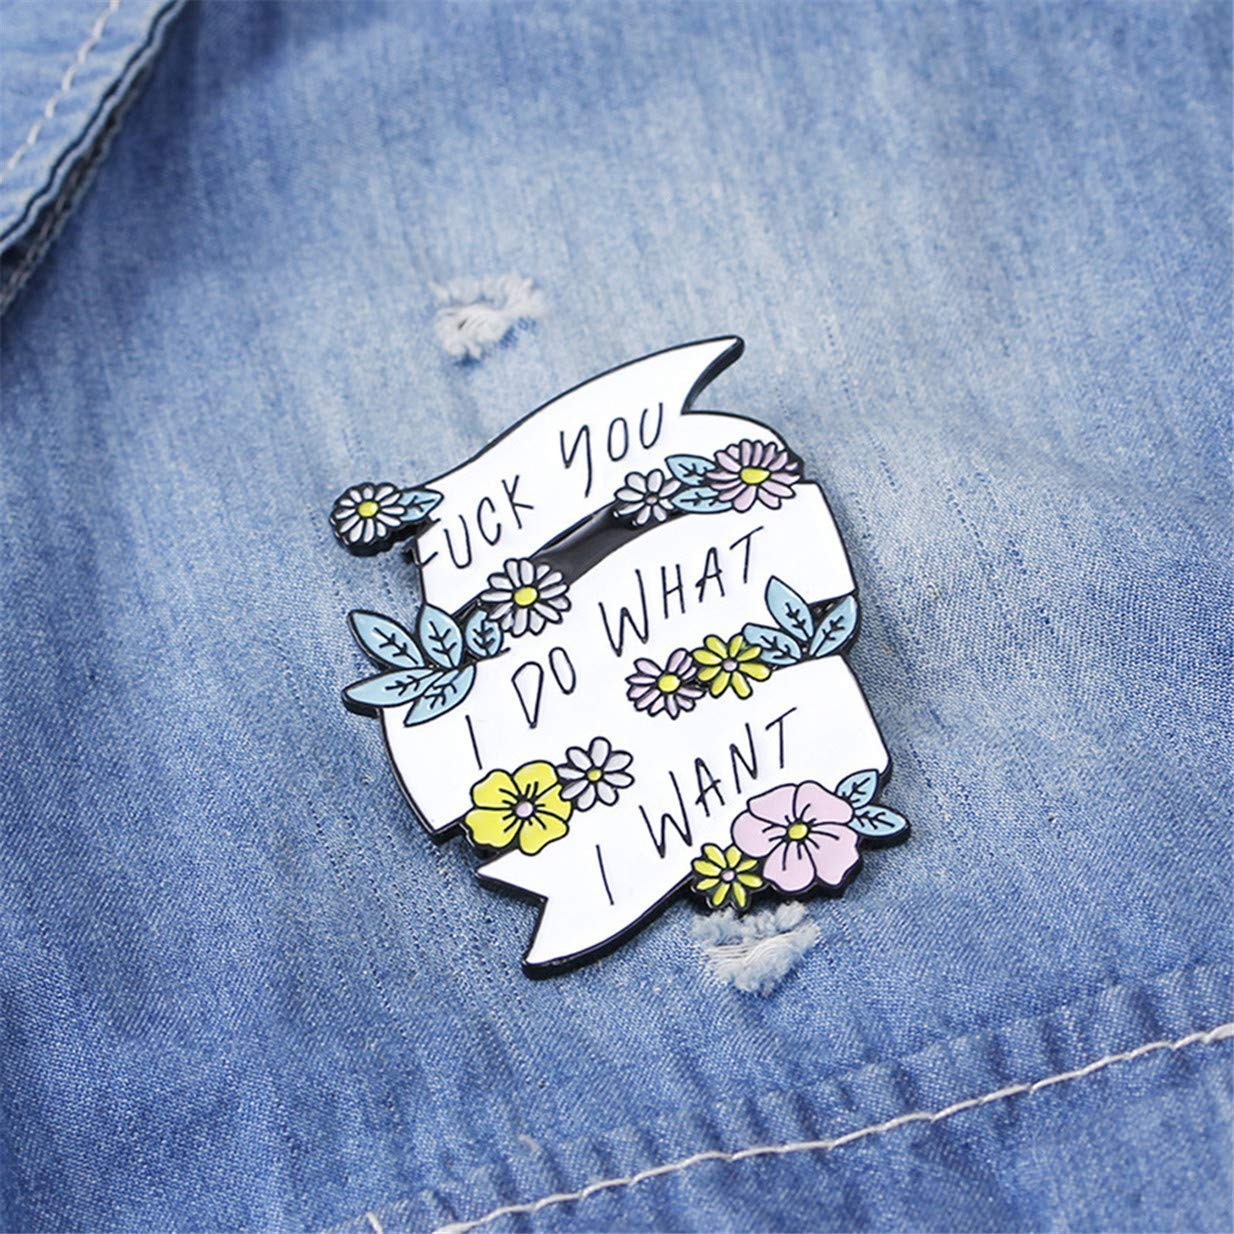 Tcplyn  Cartoon Plant Flower Lettering Enamel Pin Collar Lapel Brooch Badge Clothing Accessories by Tcplyn (Image #2)